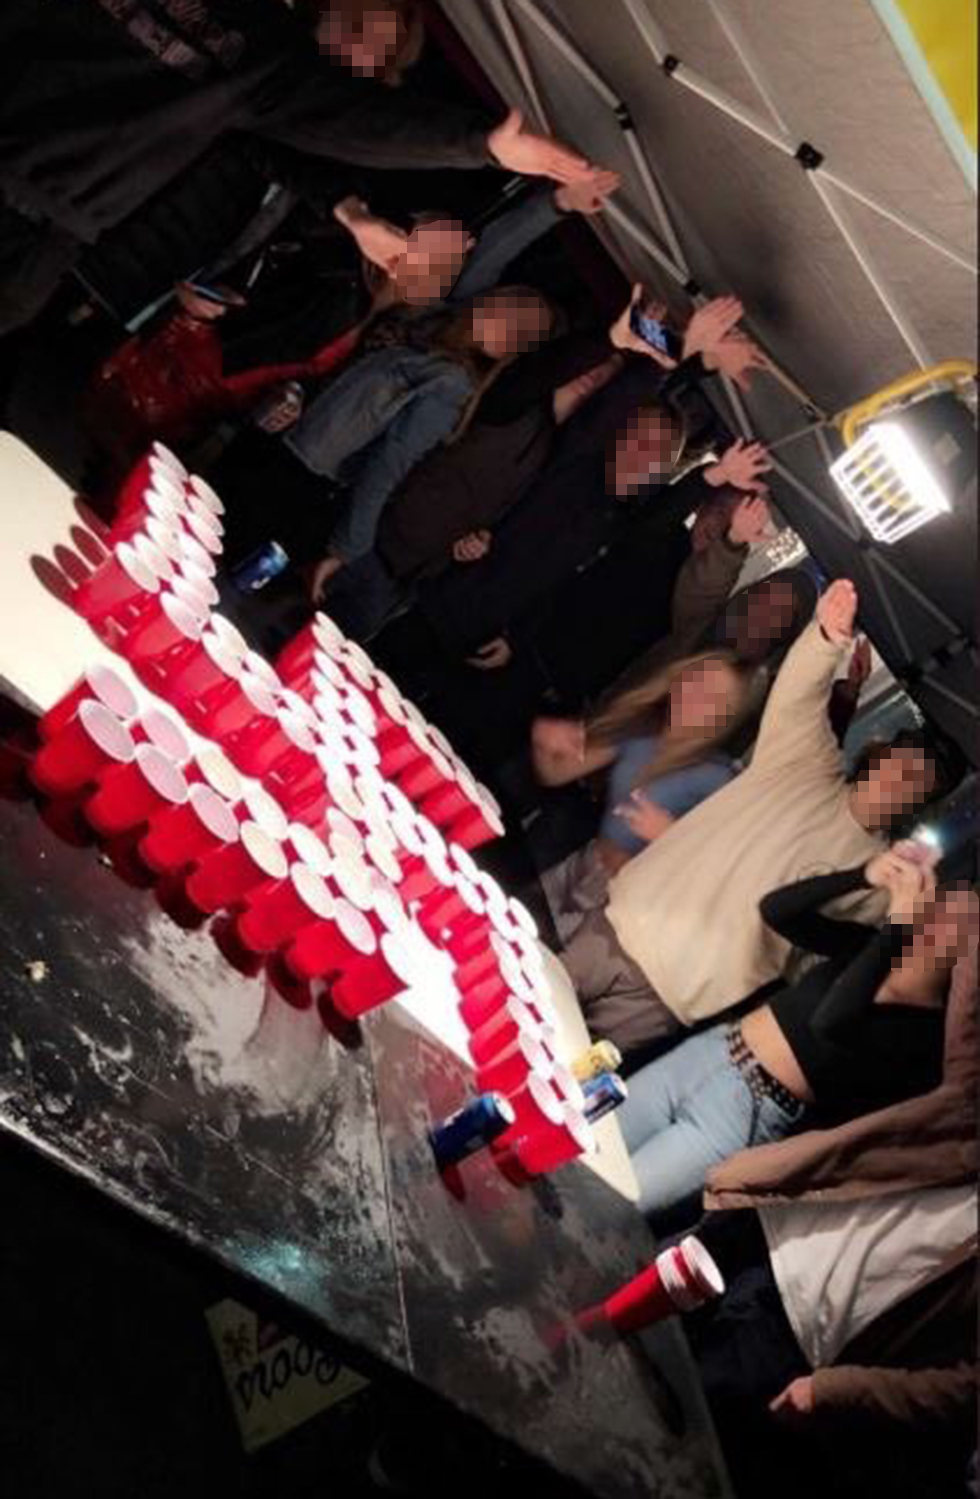 Orange County students playing beer pong with cups set up in a swastika formation  (Photo: Instagram)